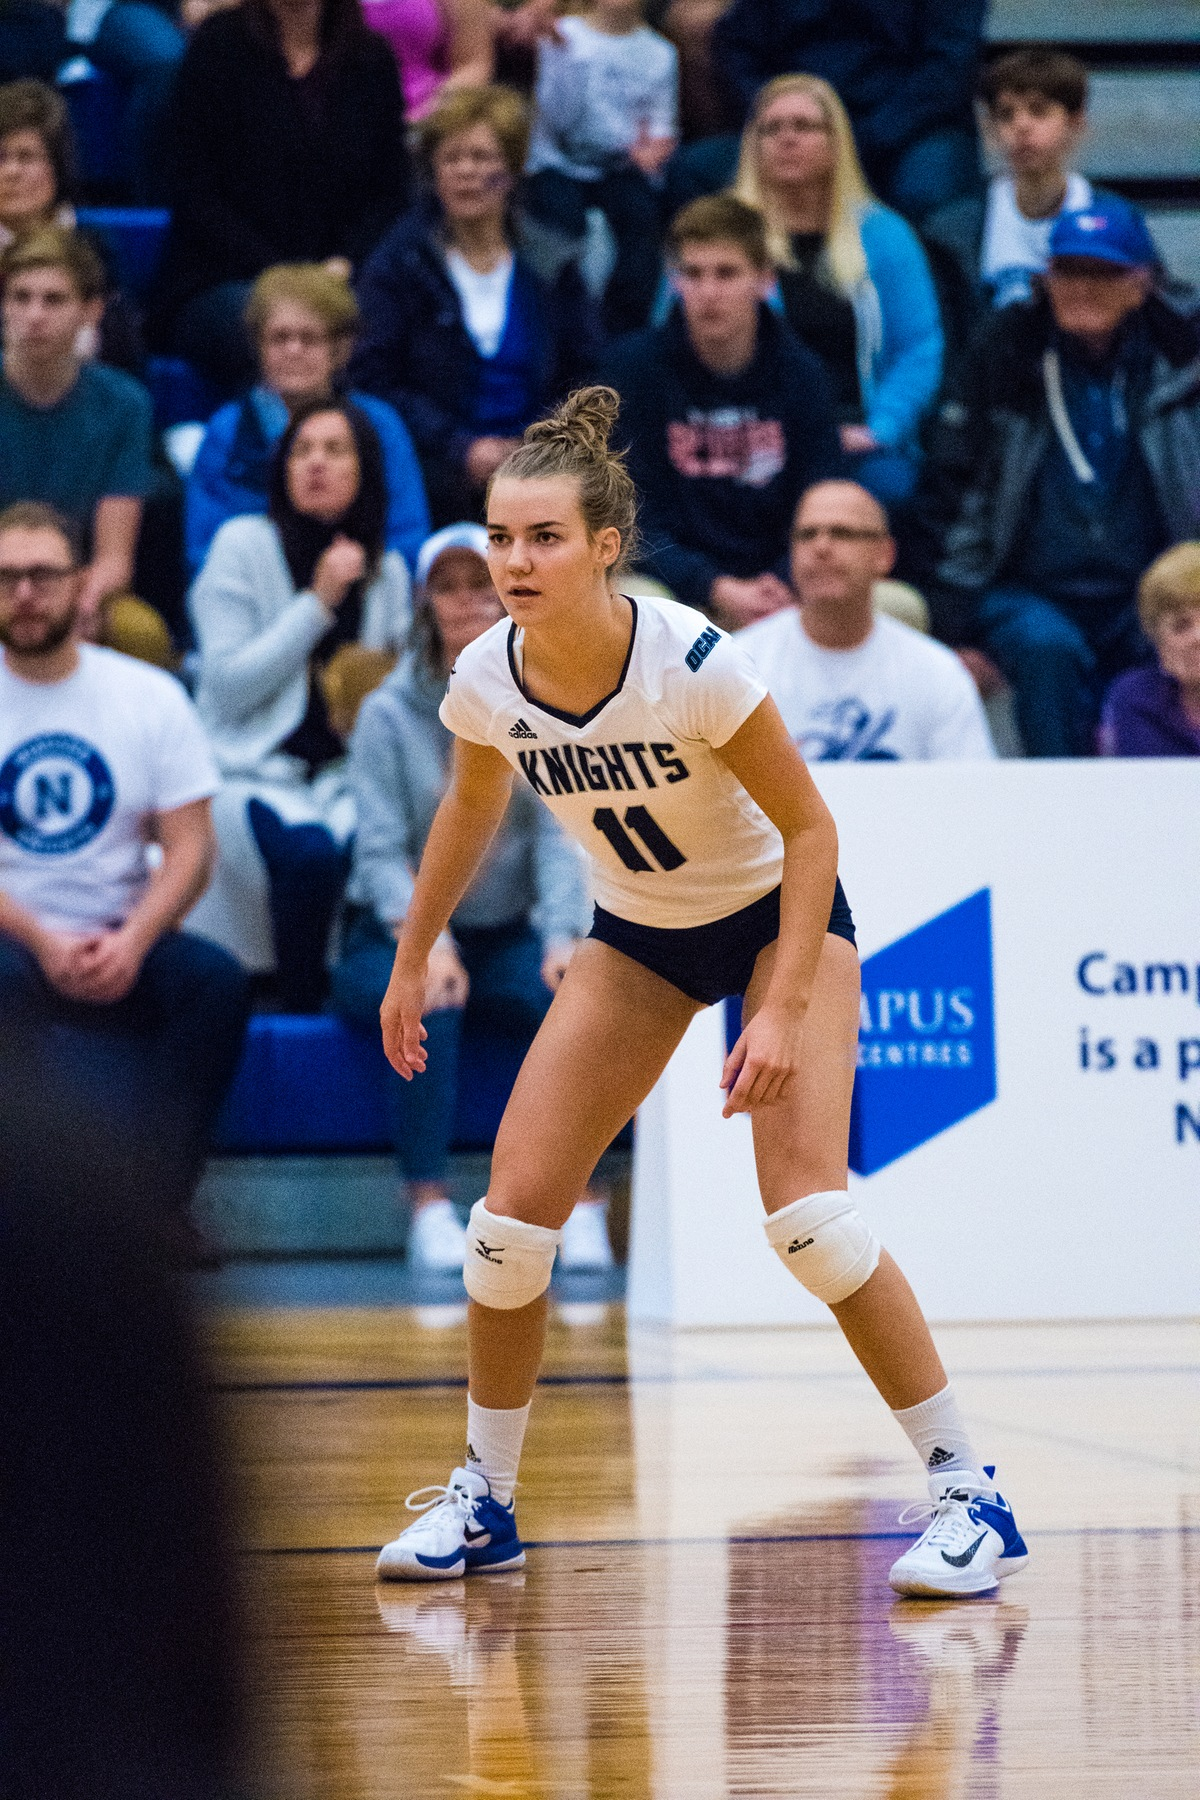 RECAP: Knights improve to 3-1 with straight set victory over Conestoga